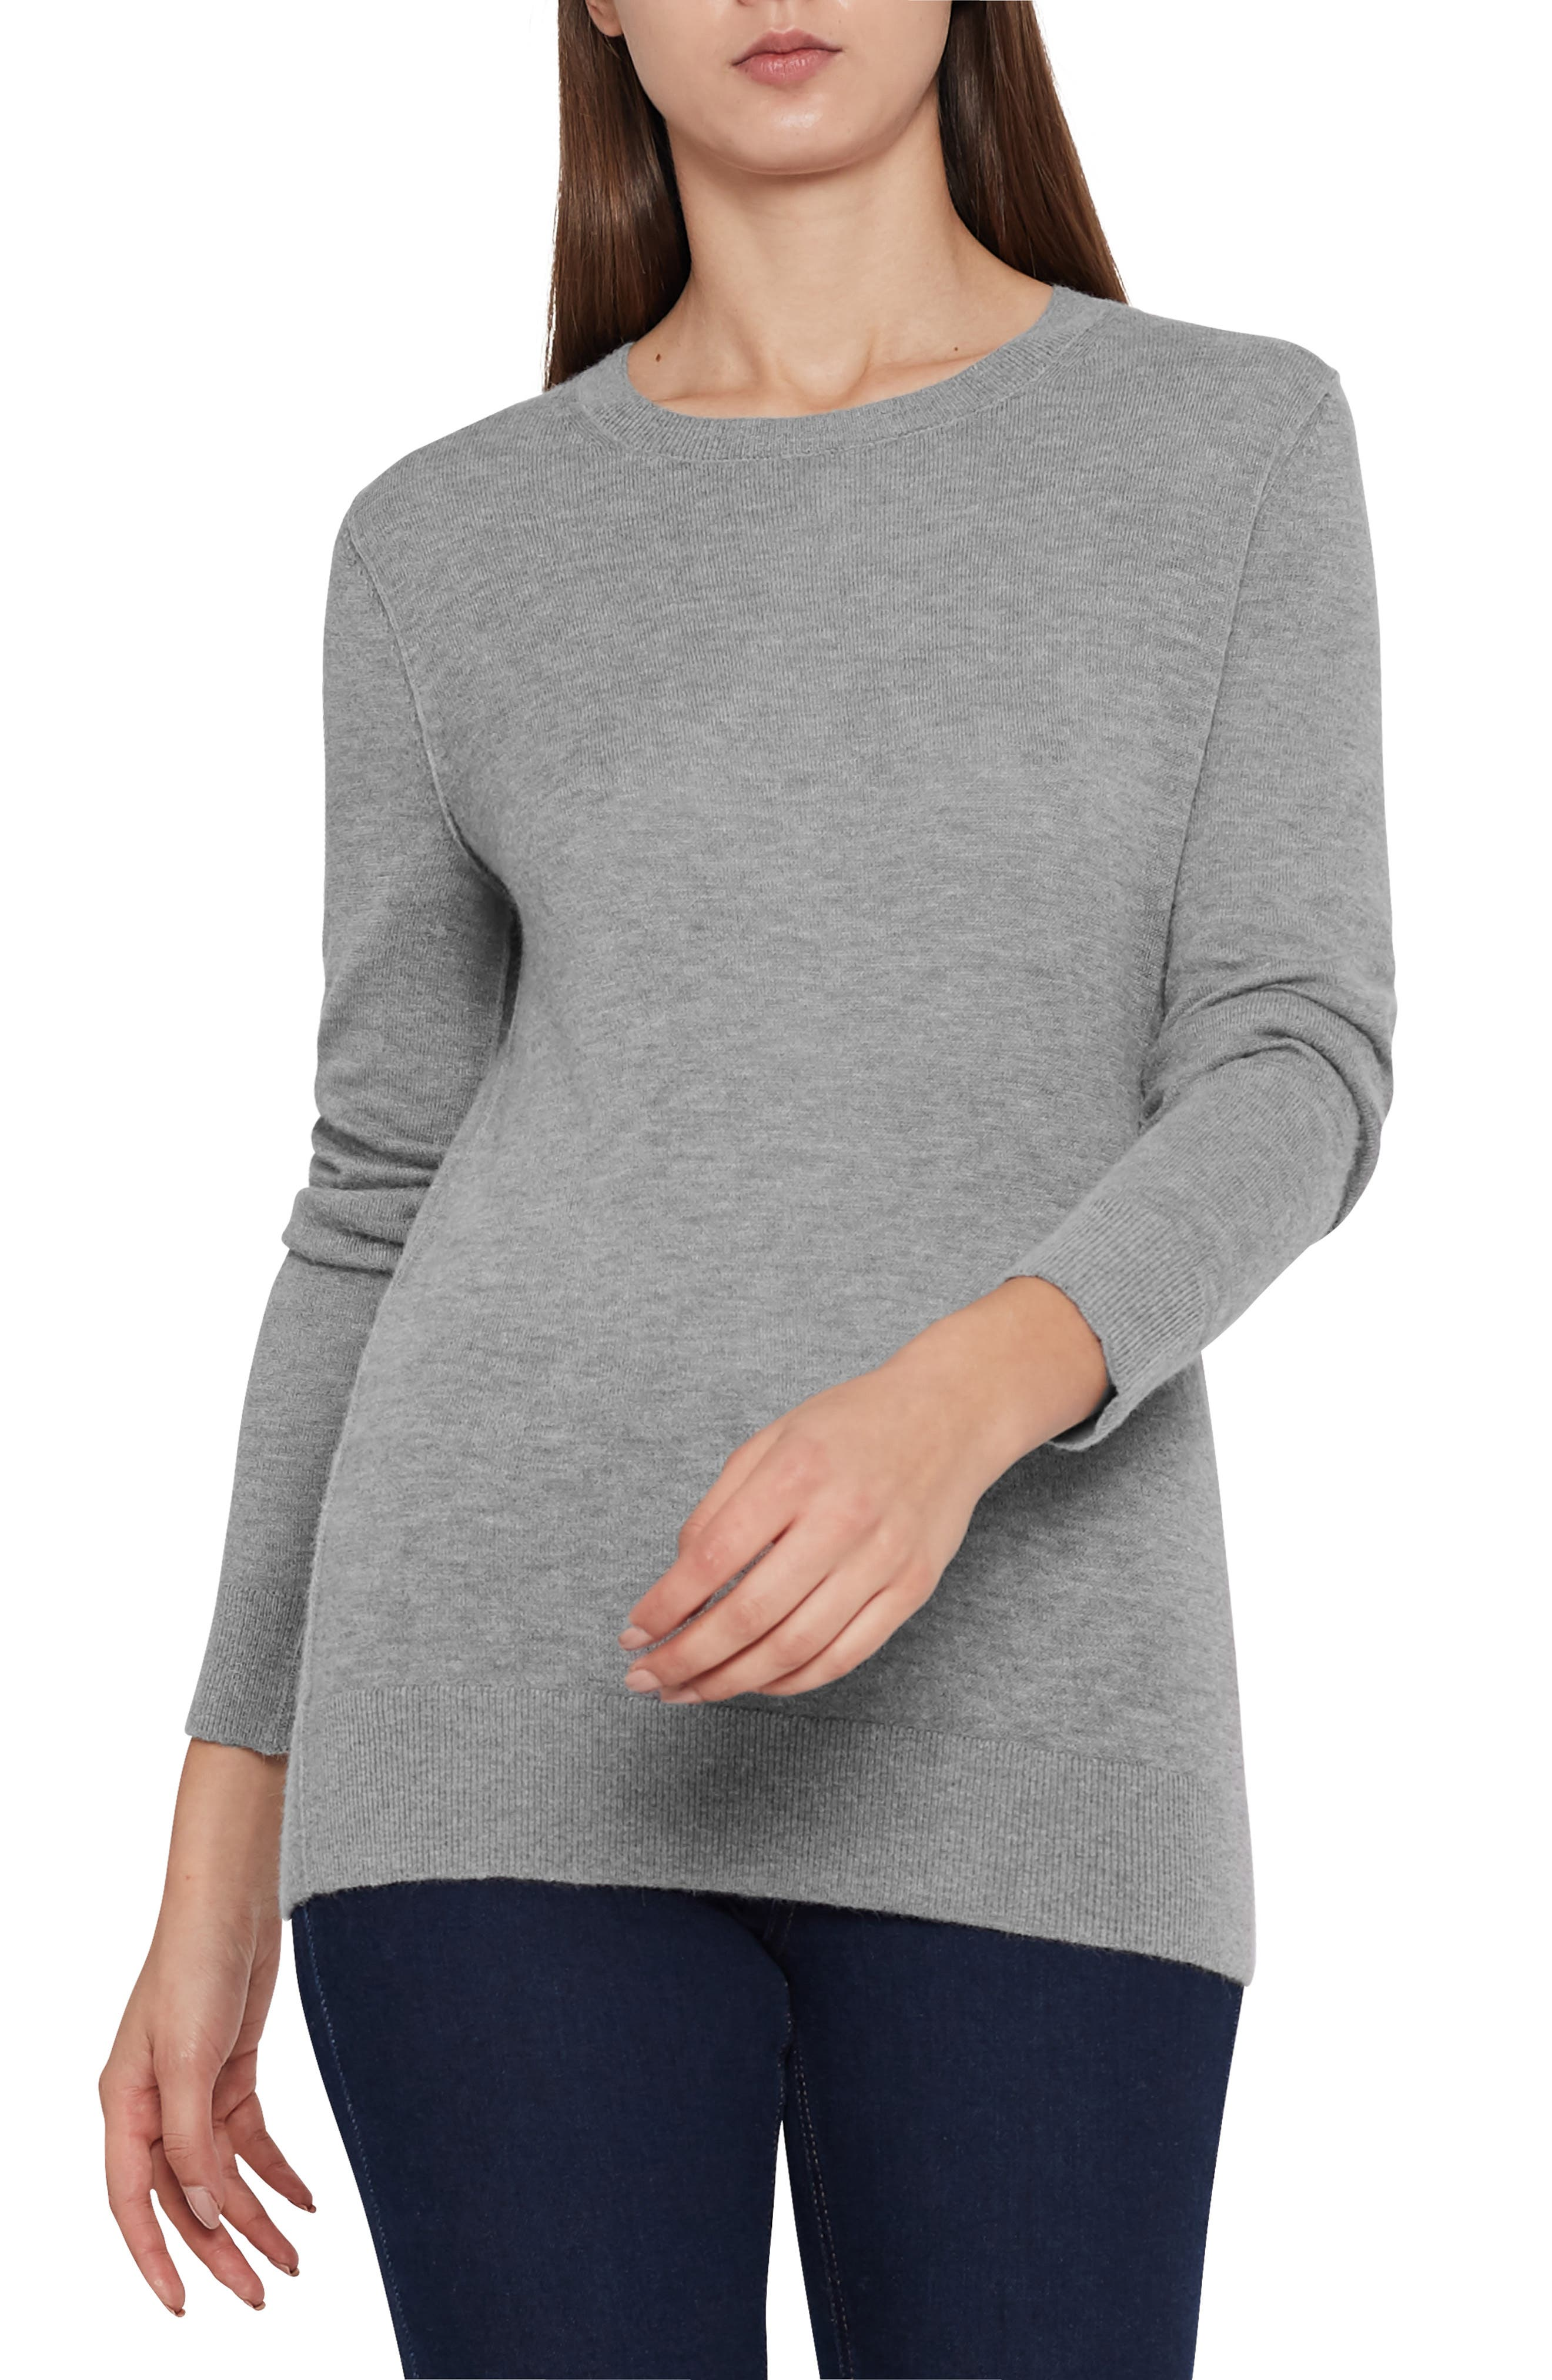 REISS Maya Crewneck Sweater in Grey Marl